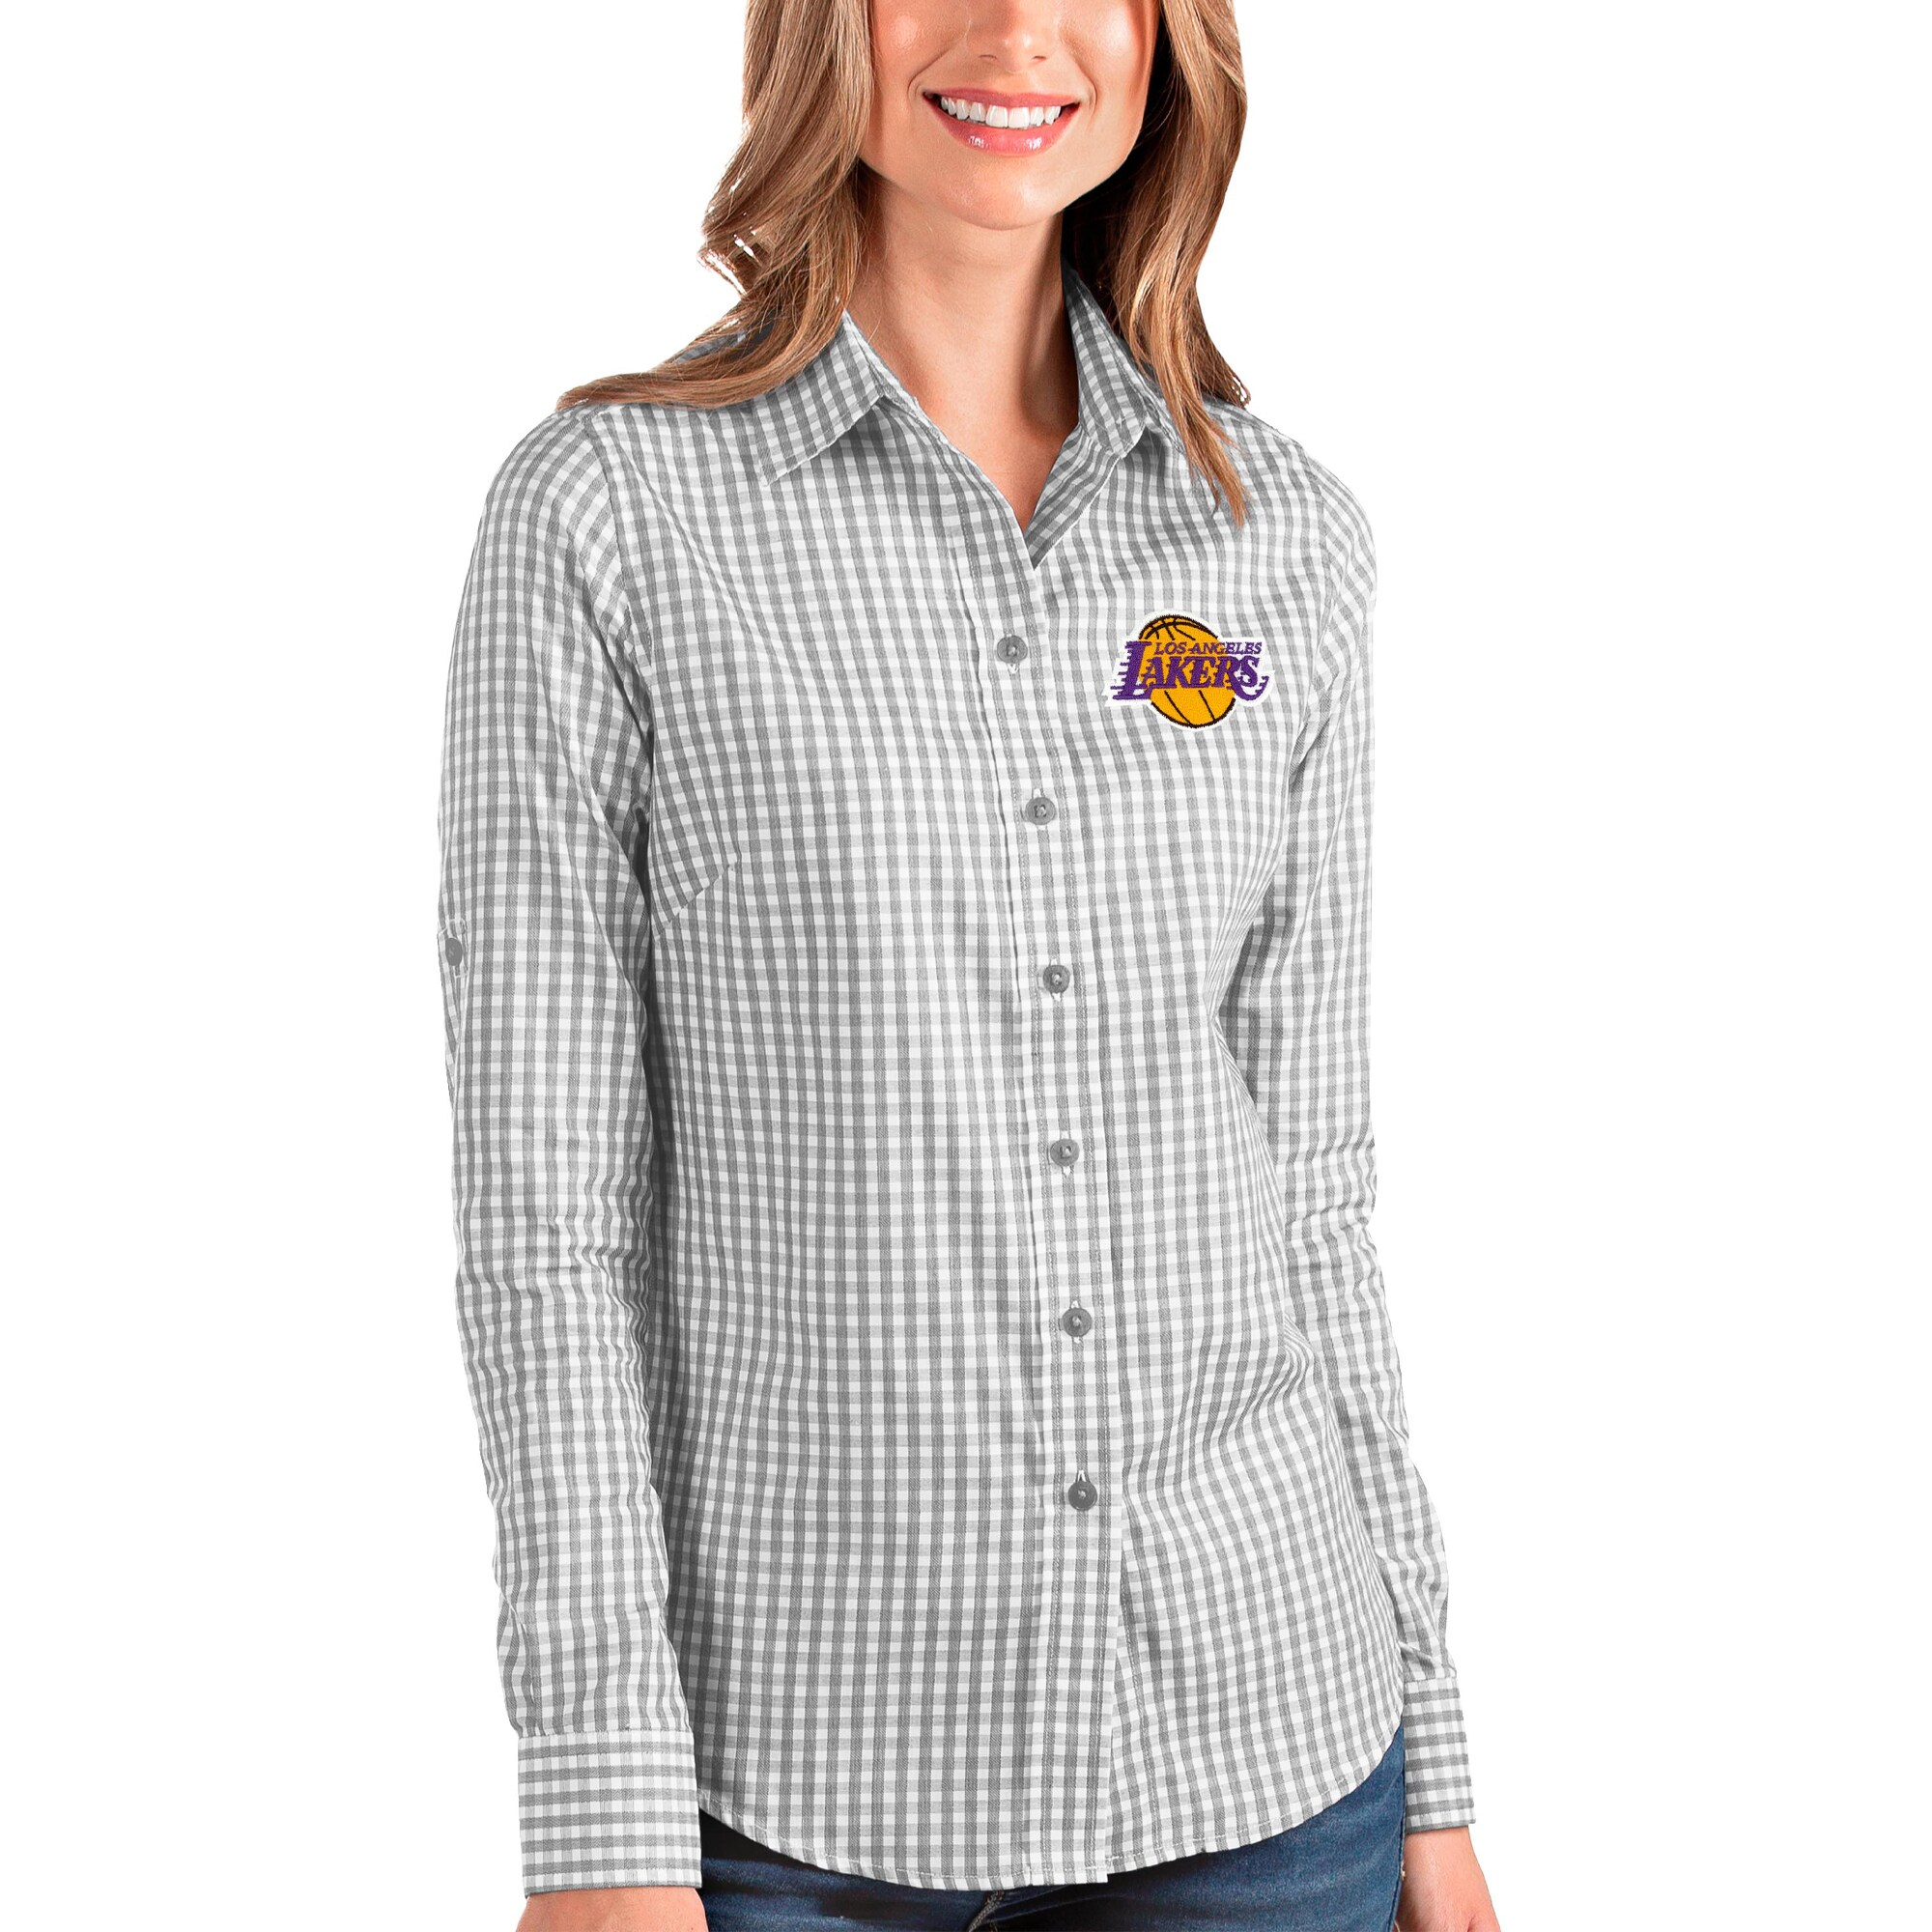 Los Angeles Lakers Antigua Women's Structure Button-Up Long Sleeve Shirt - Charcoal/White